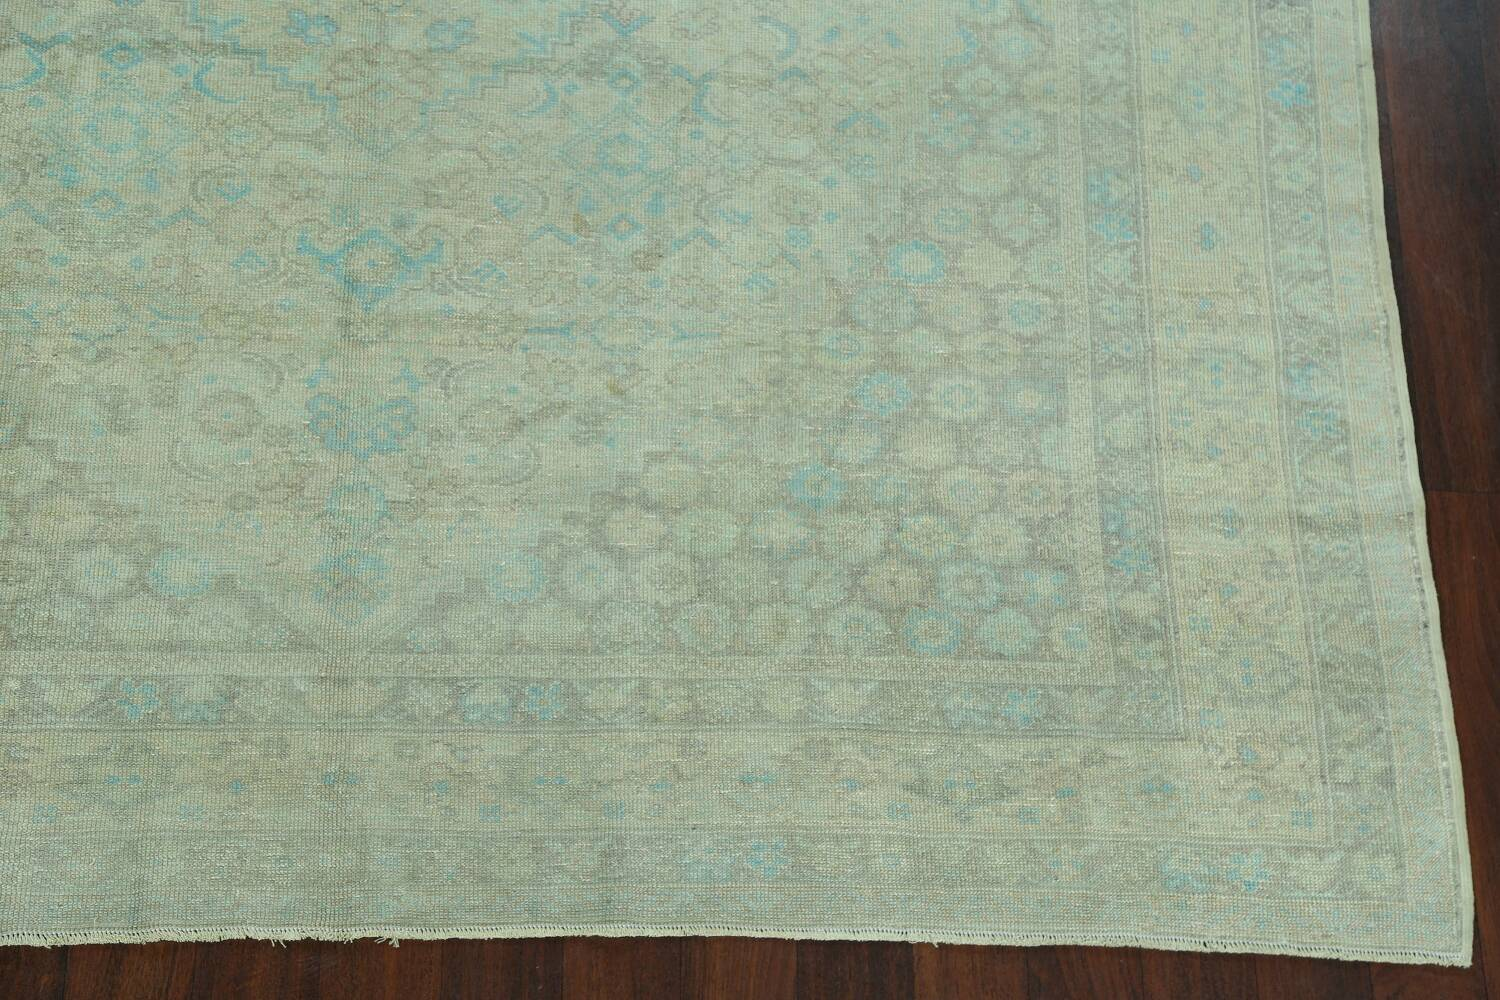 Antique 100% Vegetable Dye Sultanabad Persian Area Rug 8x9 image 5